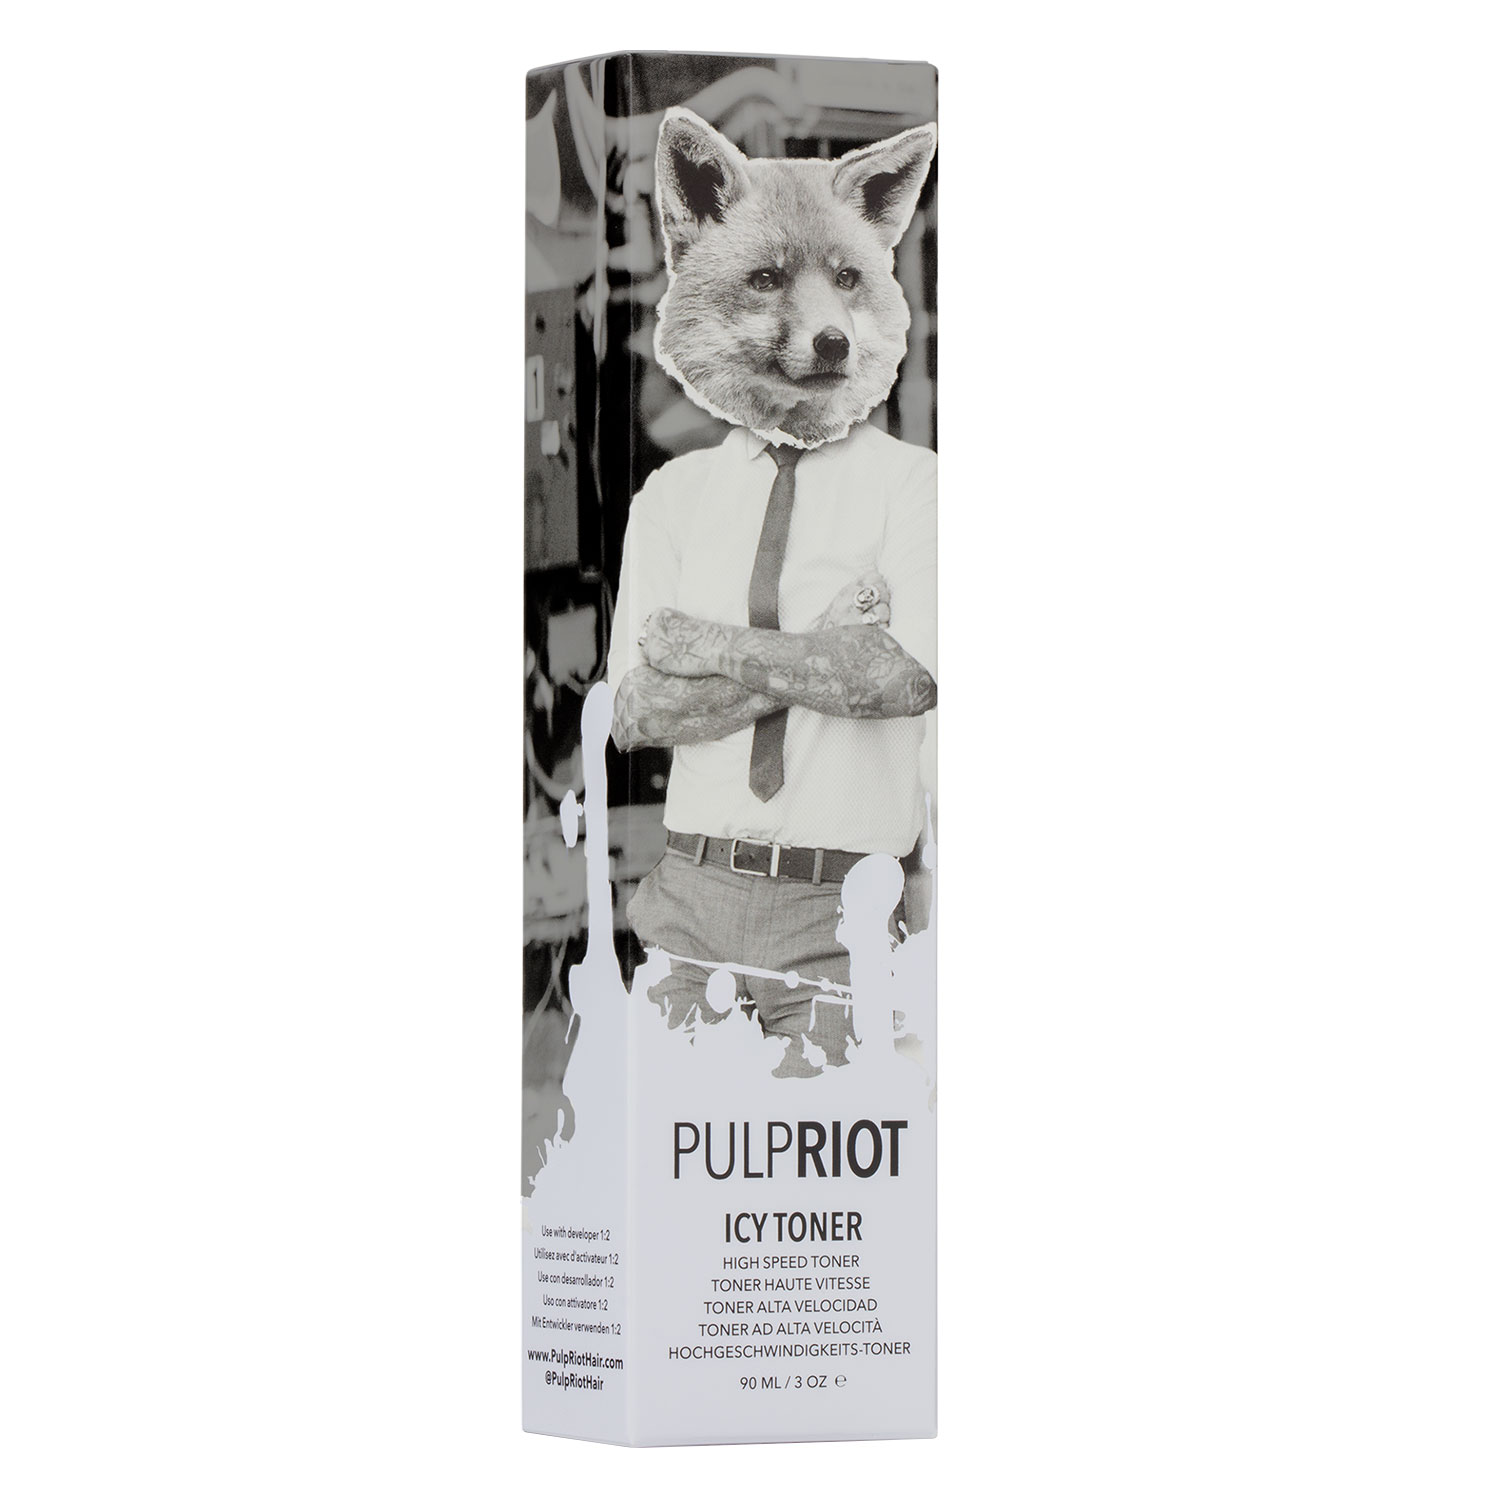 Pulp Riot - High Speed Toner Icy